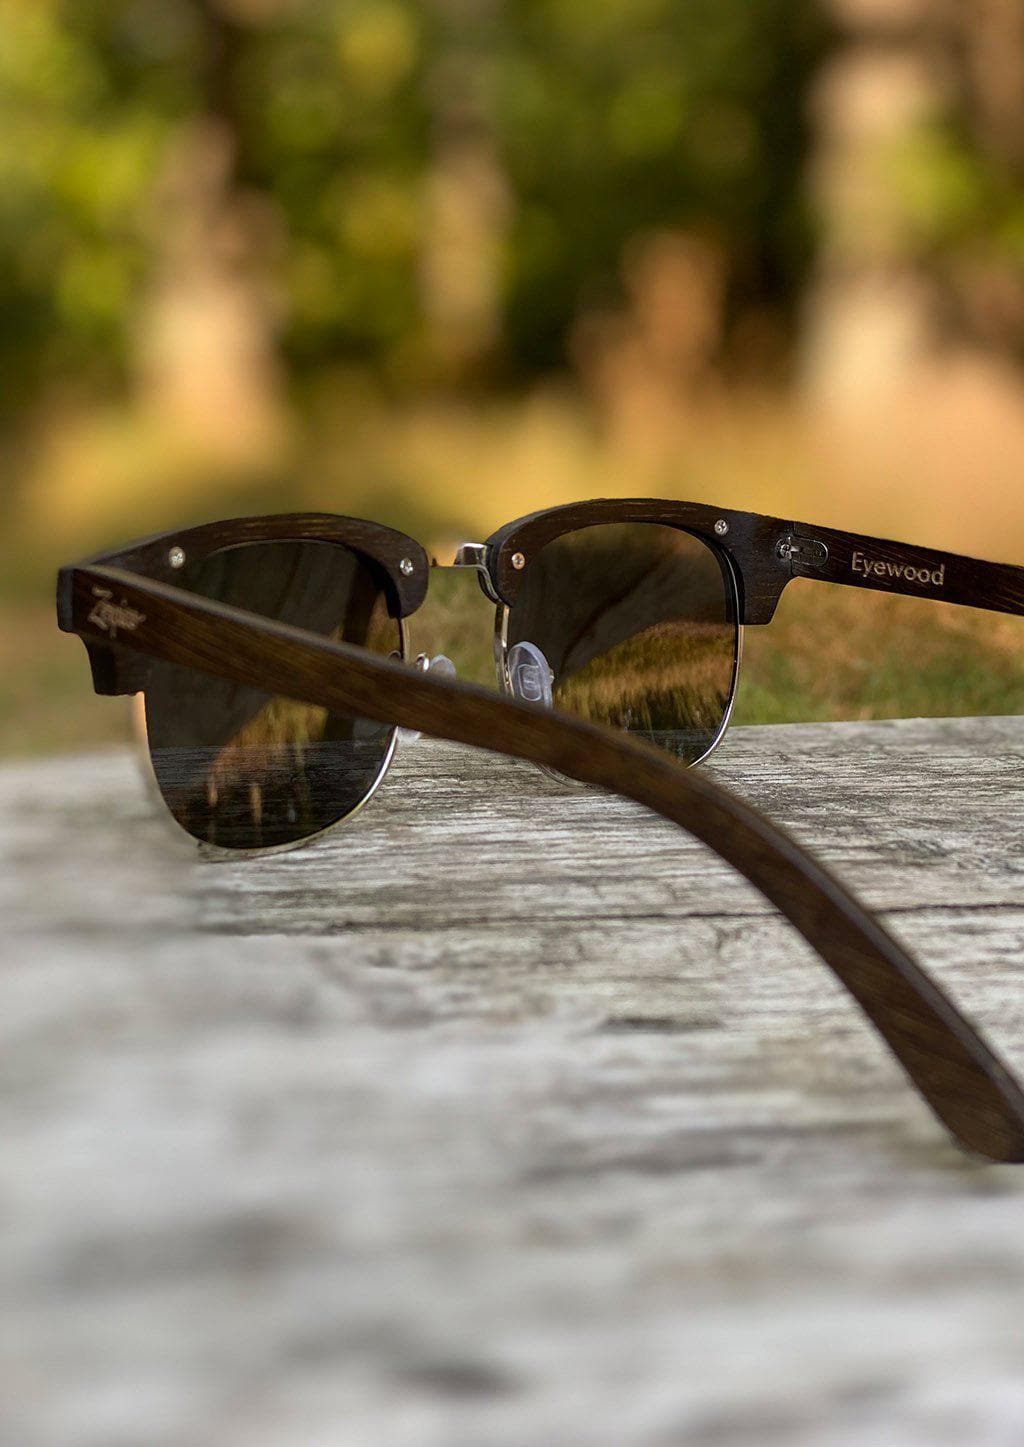 Eyewood Clubmasters is our cool take on classic model. This is Skyler with dark lenses. And also this model is made in all wood. Cool photo from the side.